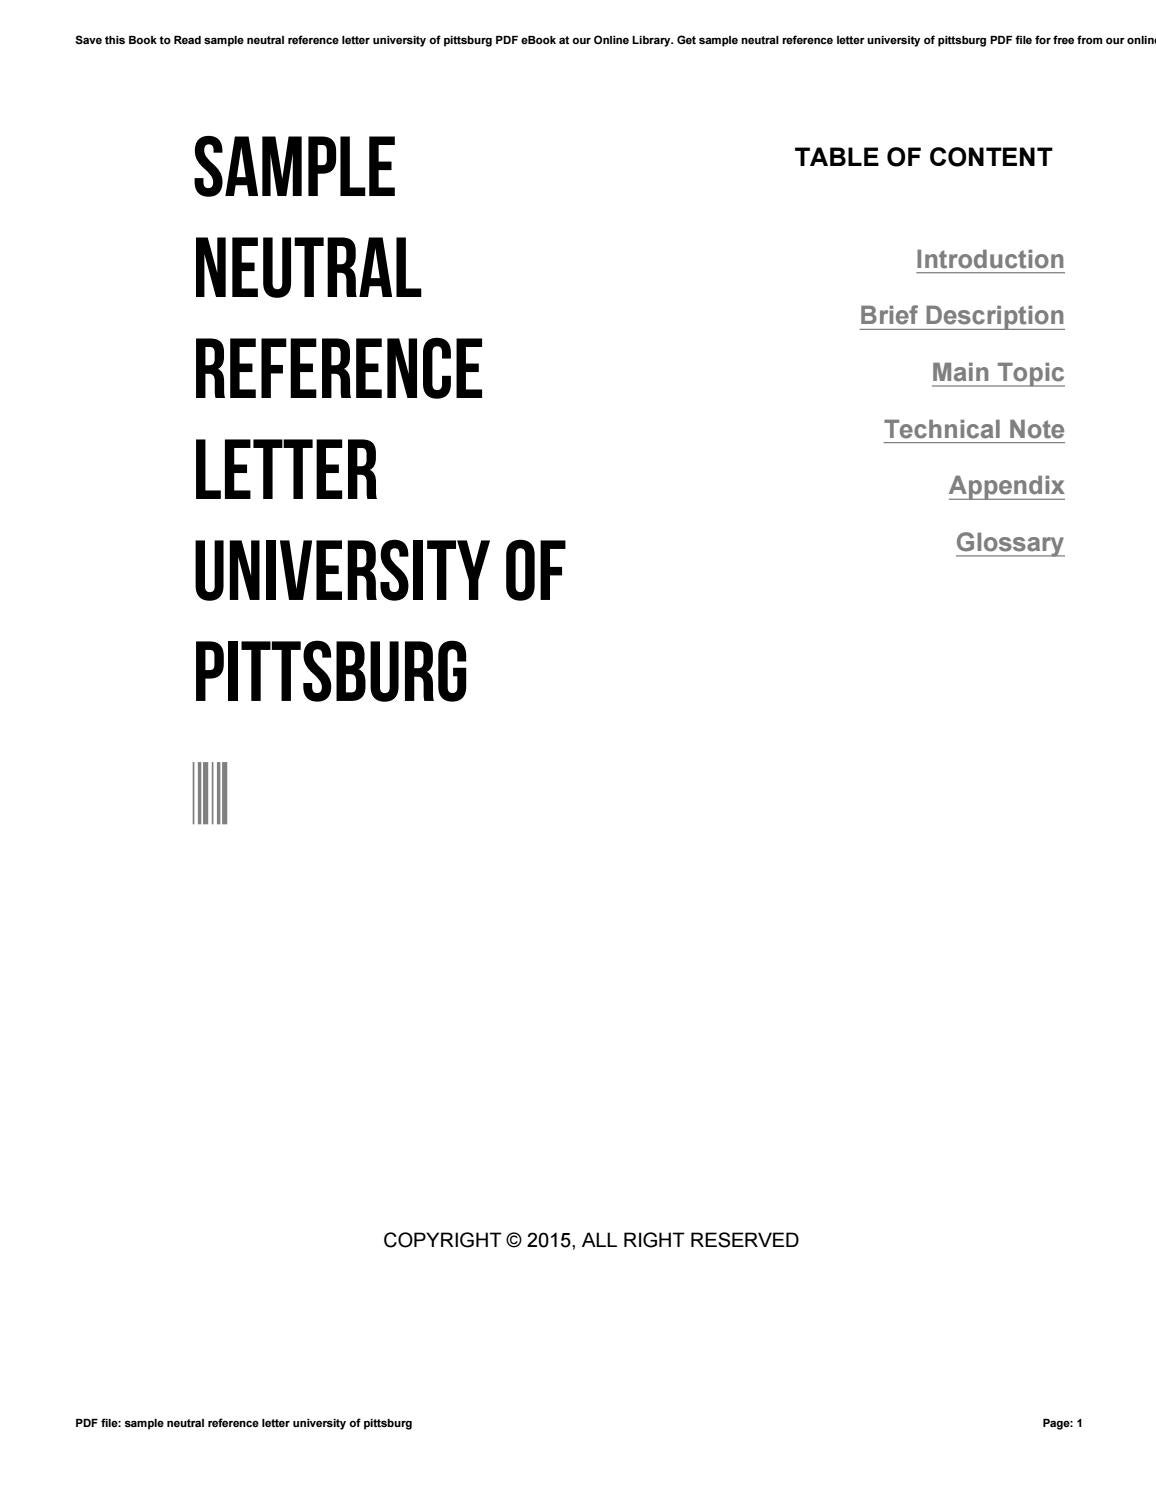 Sample neutral reference letter university of pittsburg by